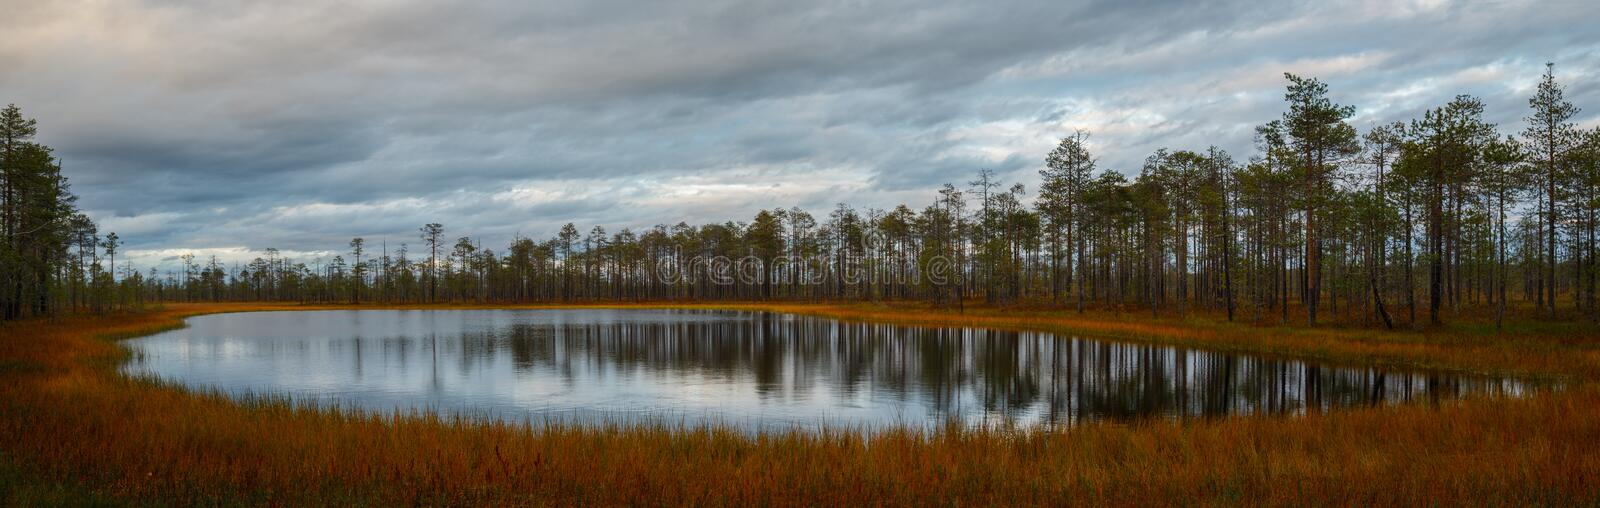 Autumn landscape panorama, lake in the marshland in the forest stock images